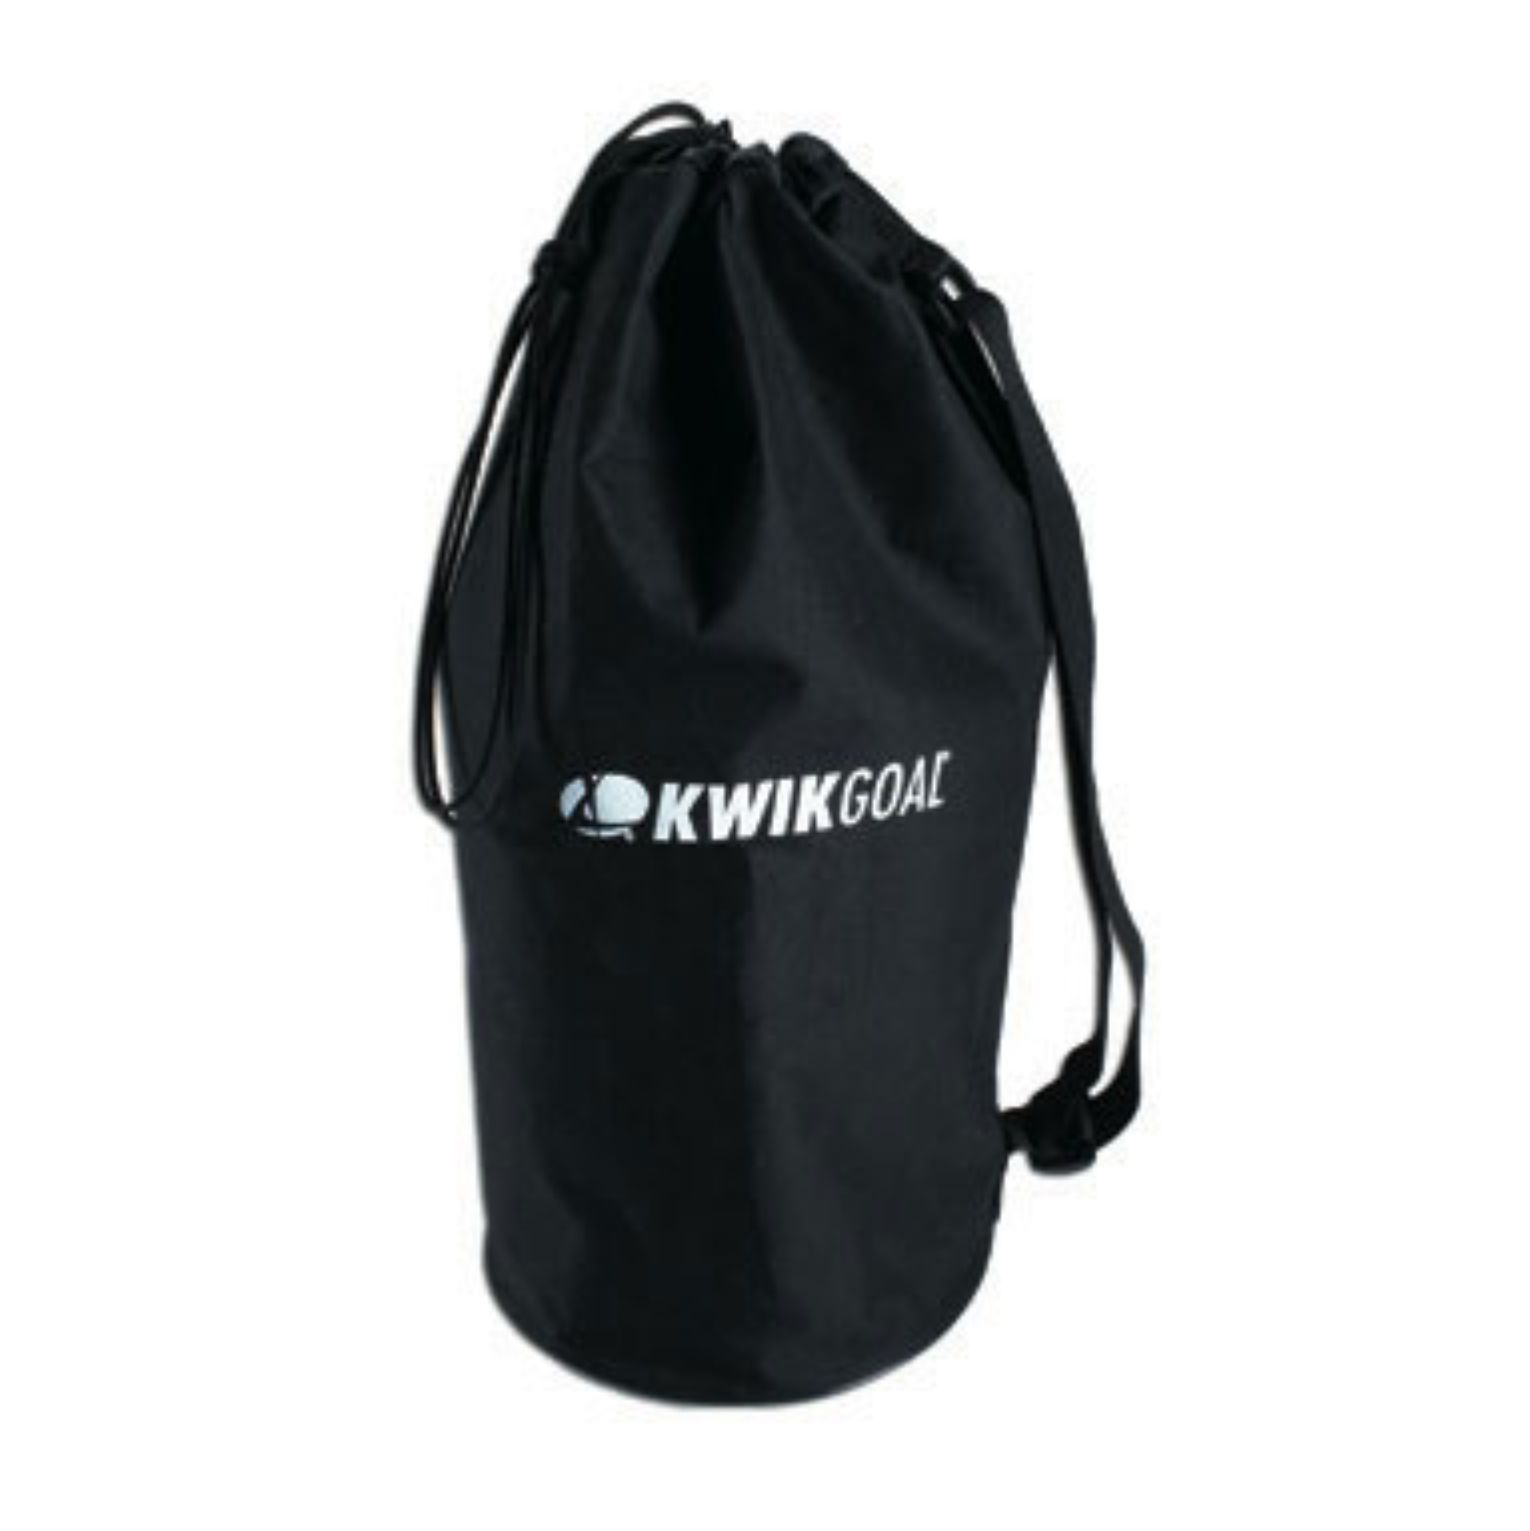 Kwik Goal Cone Carry Bag 5B1406-LCS